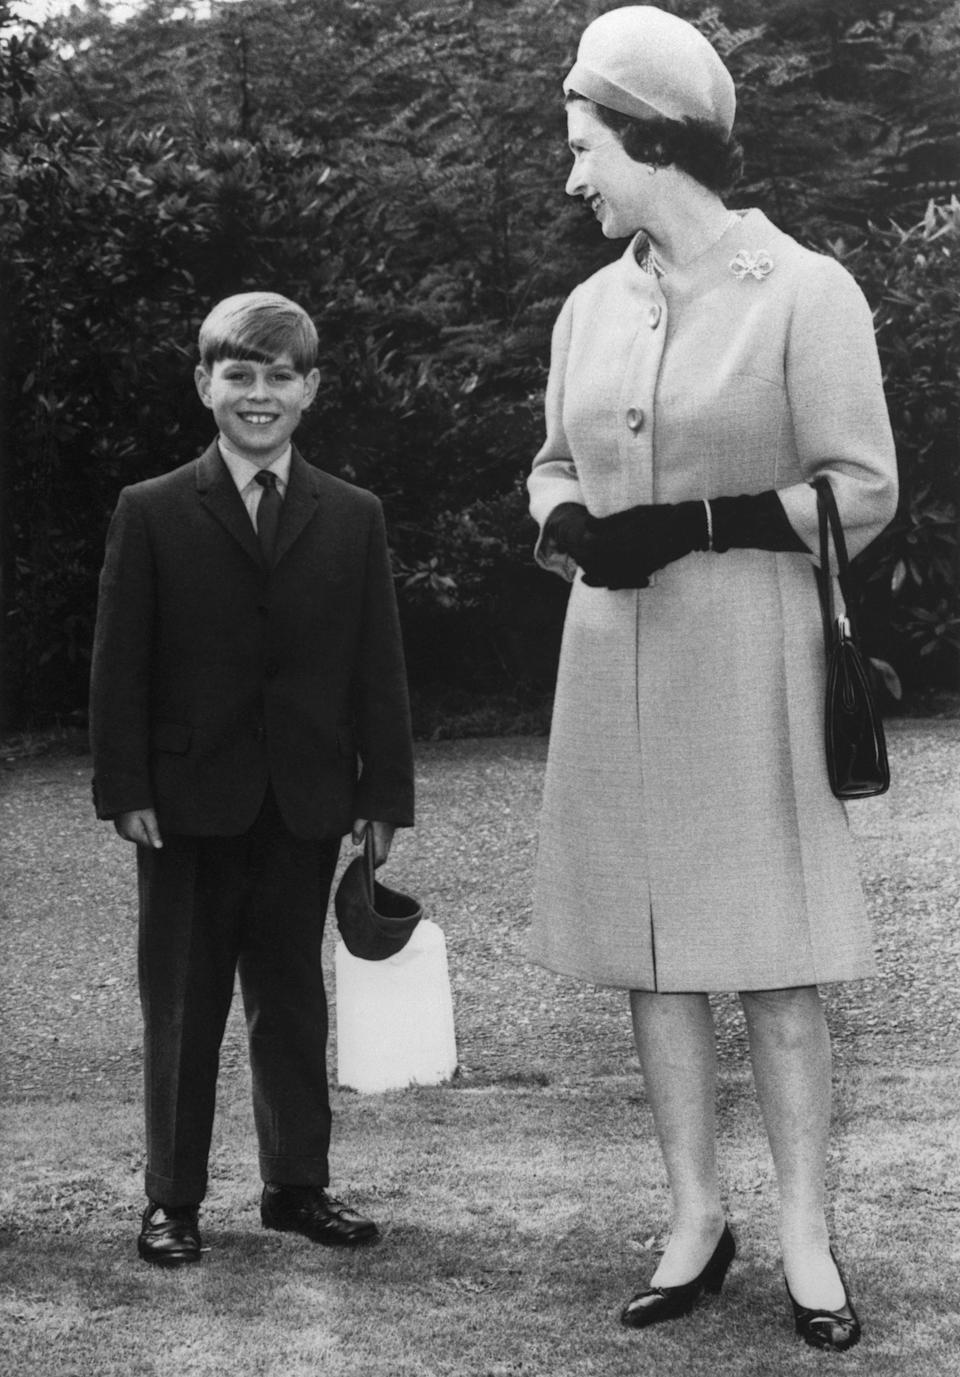 The Queen accompanies Prince Andrew on his first day at Heatherdown Preparatory School in Ascot, England, in 1968. [Photo: Getty]